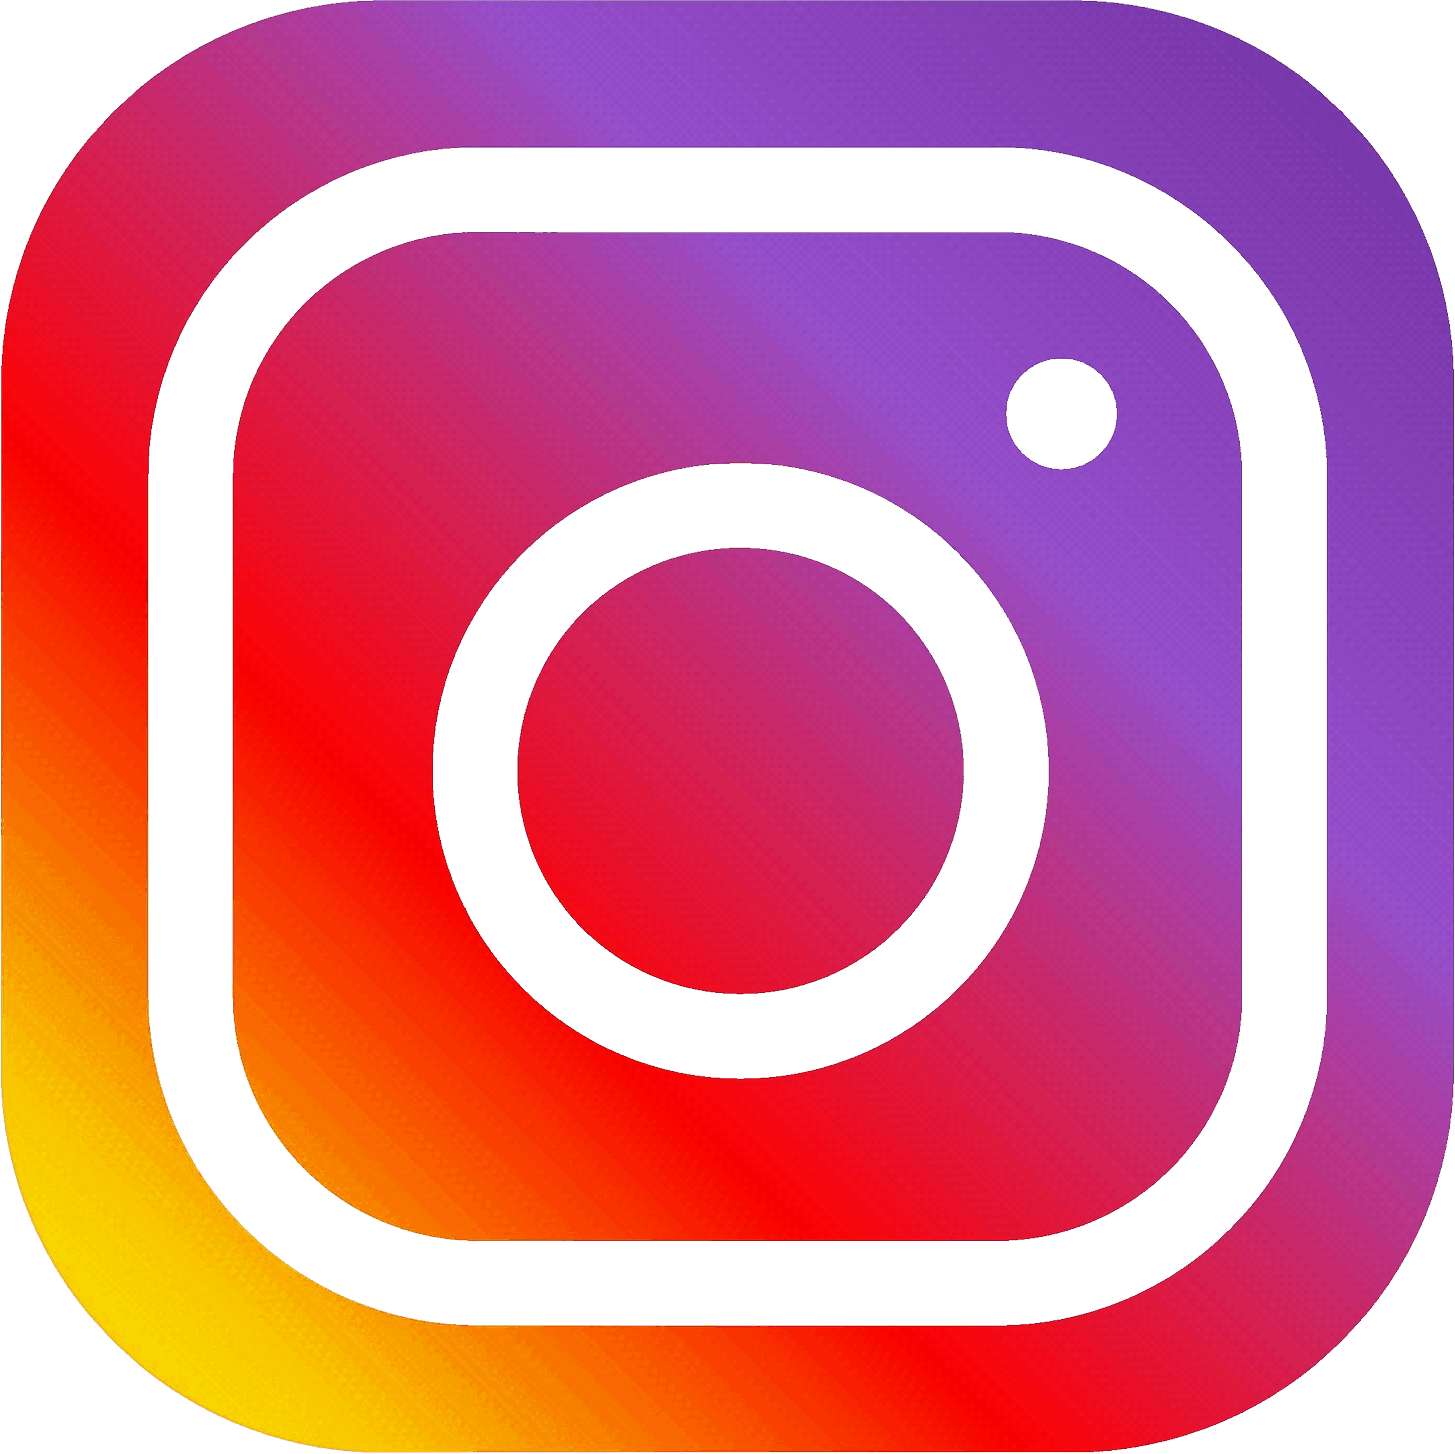 instagram-png-instagram-png-logo-1455 » Eager People